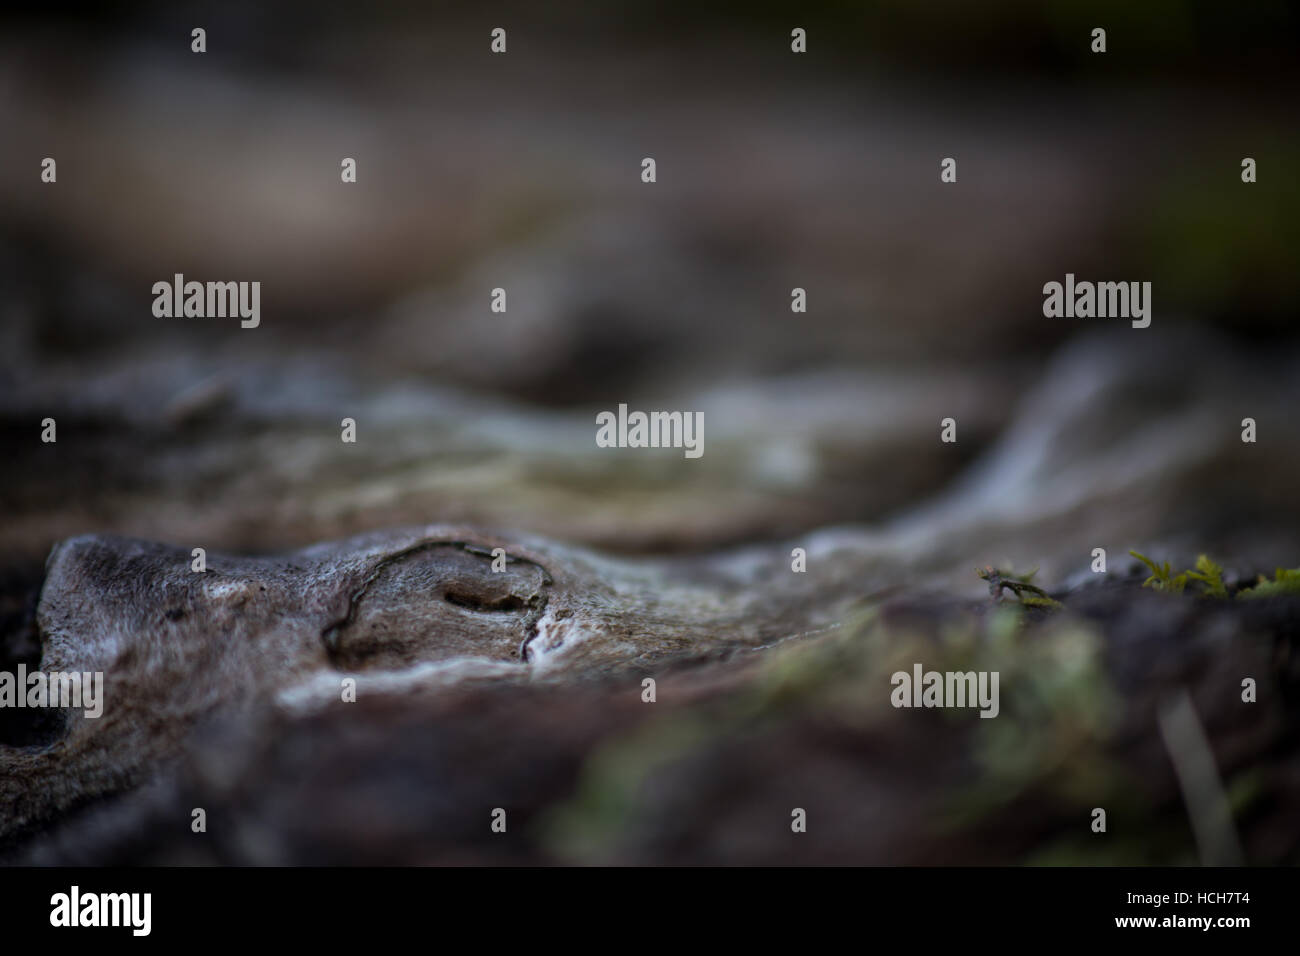 Wood knot in a root, with shalow depth of field - Stock Image